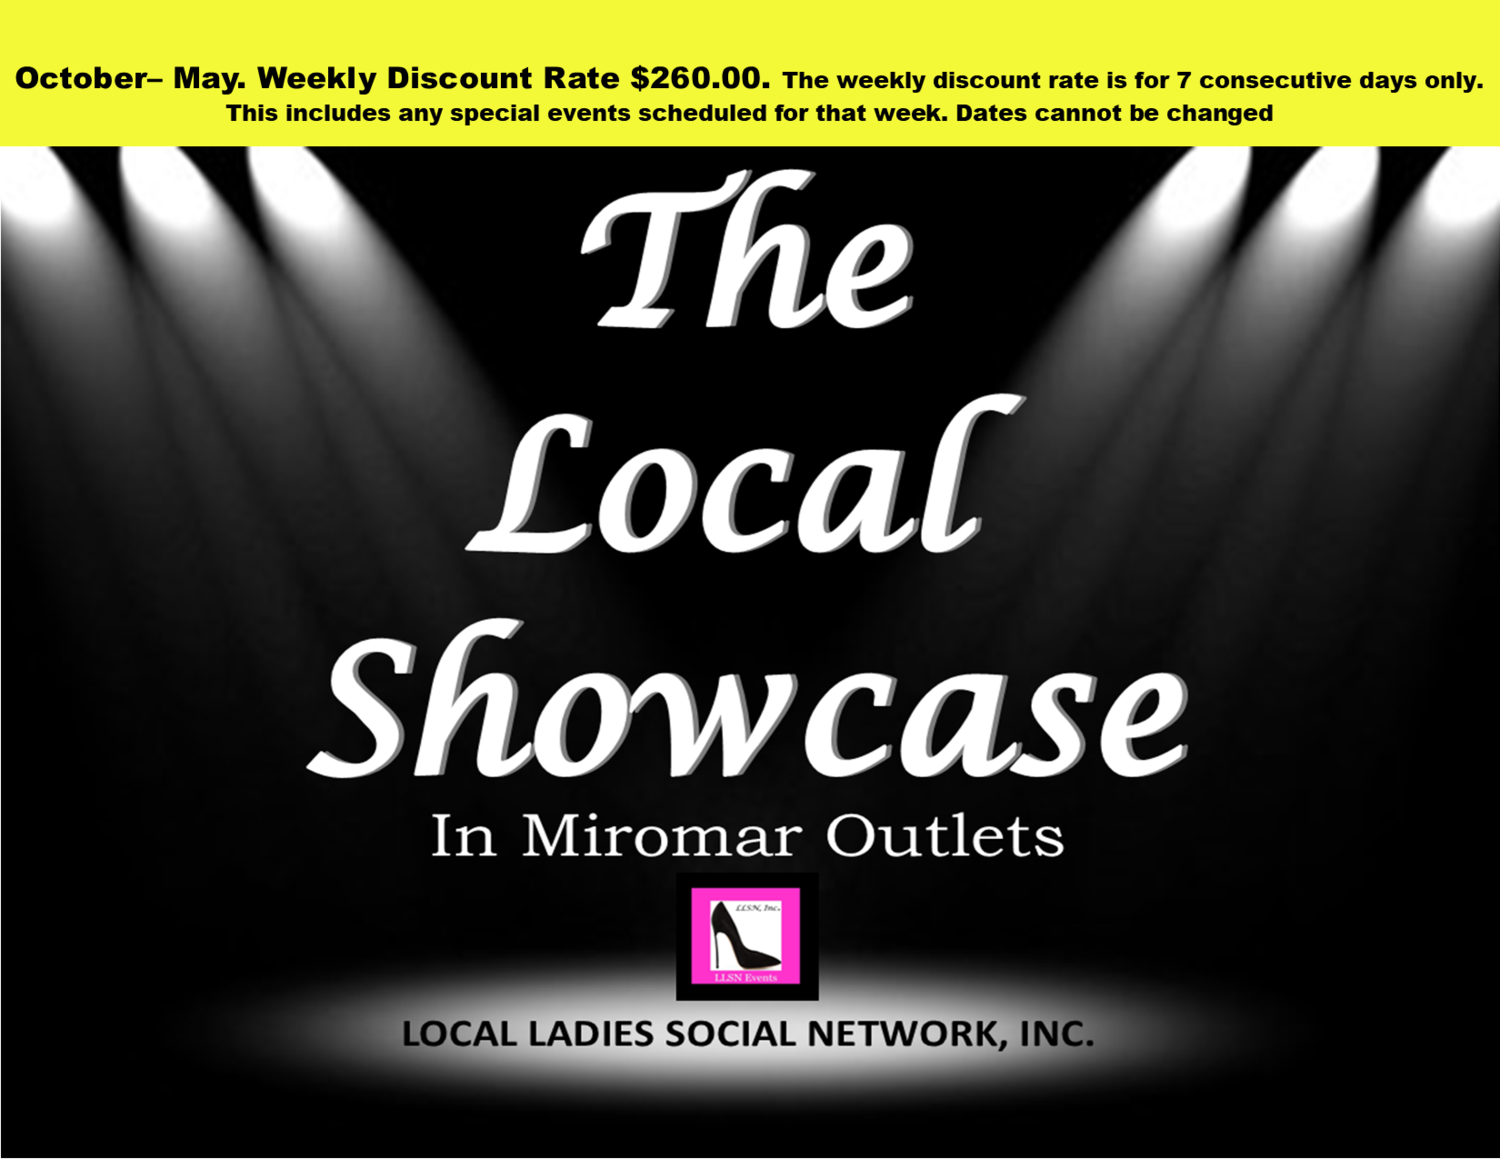 Weekly Discount-Oct-May. Only Approved Vendors may use this payment method for The Local Showcase in Miromar Outlets. Interested vendors please email: LLSN@comcast.net for approval.